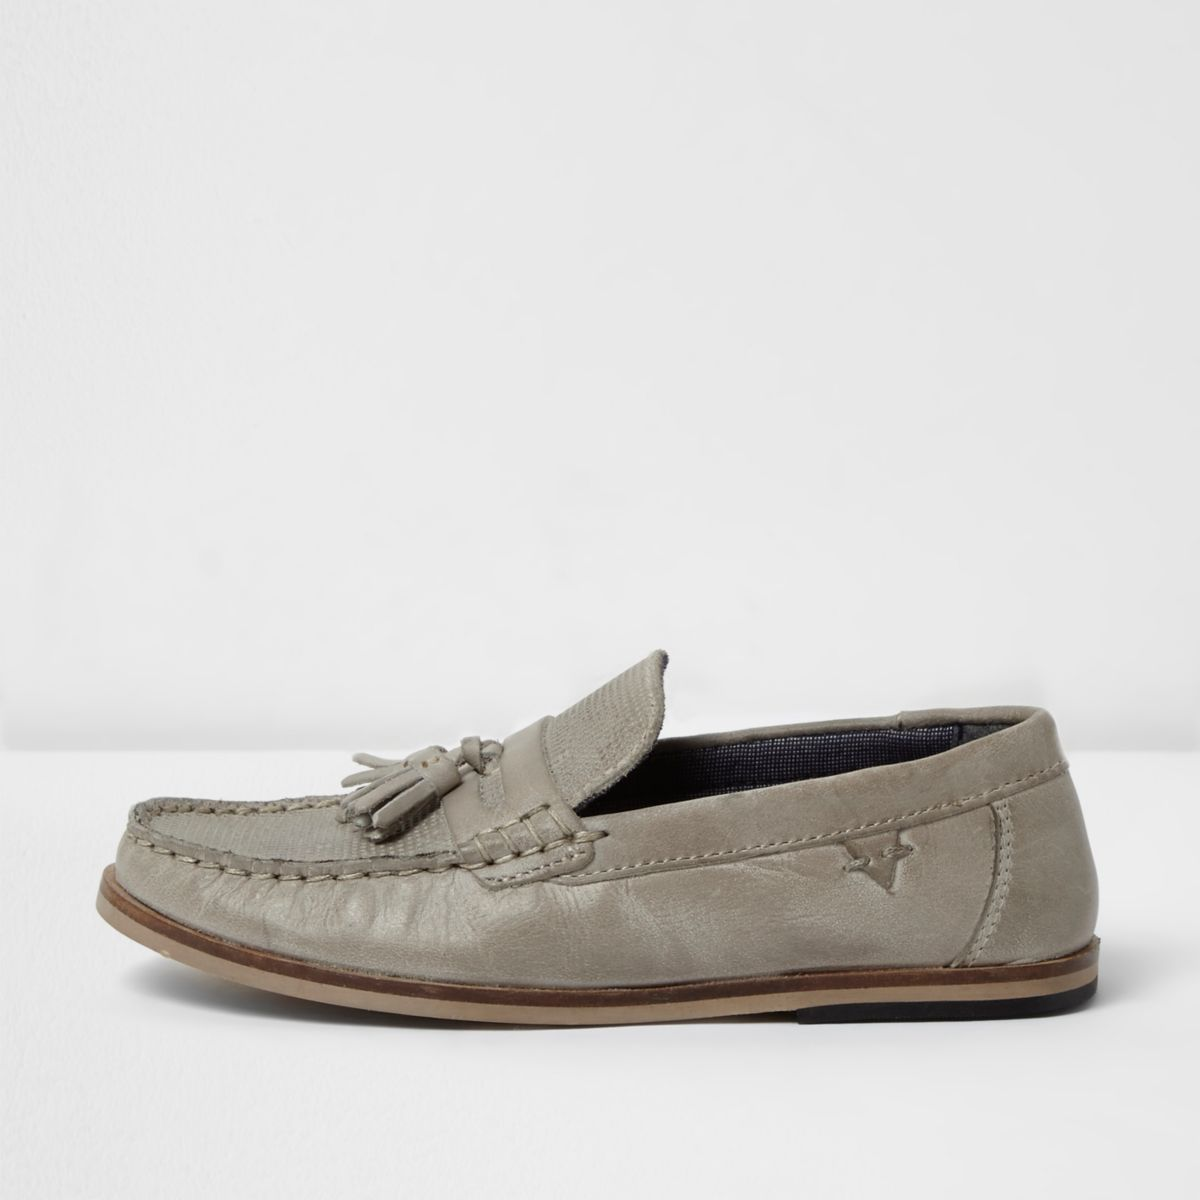 Boys grey leather tassel loafers